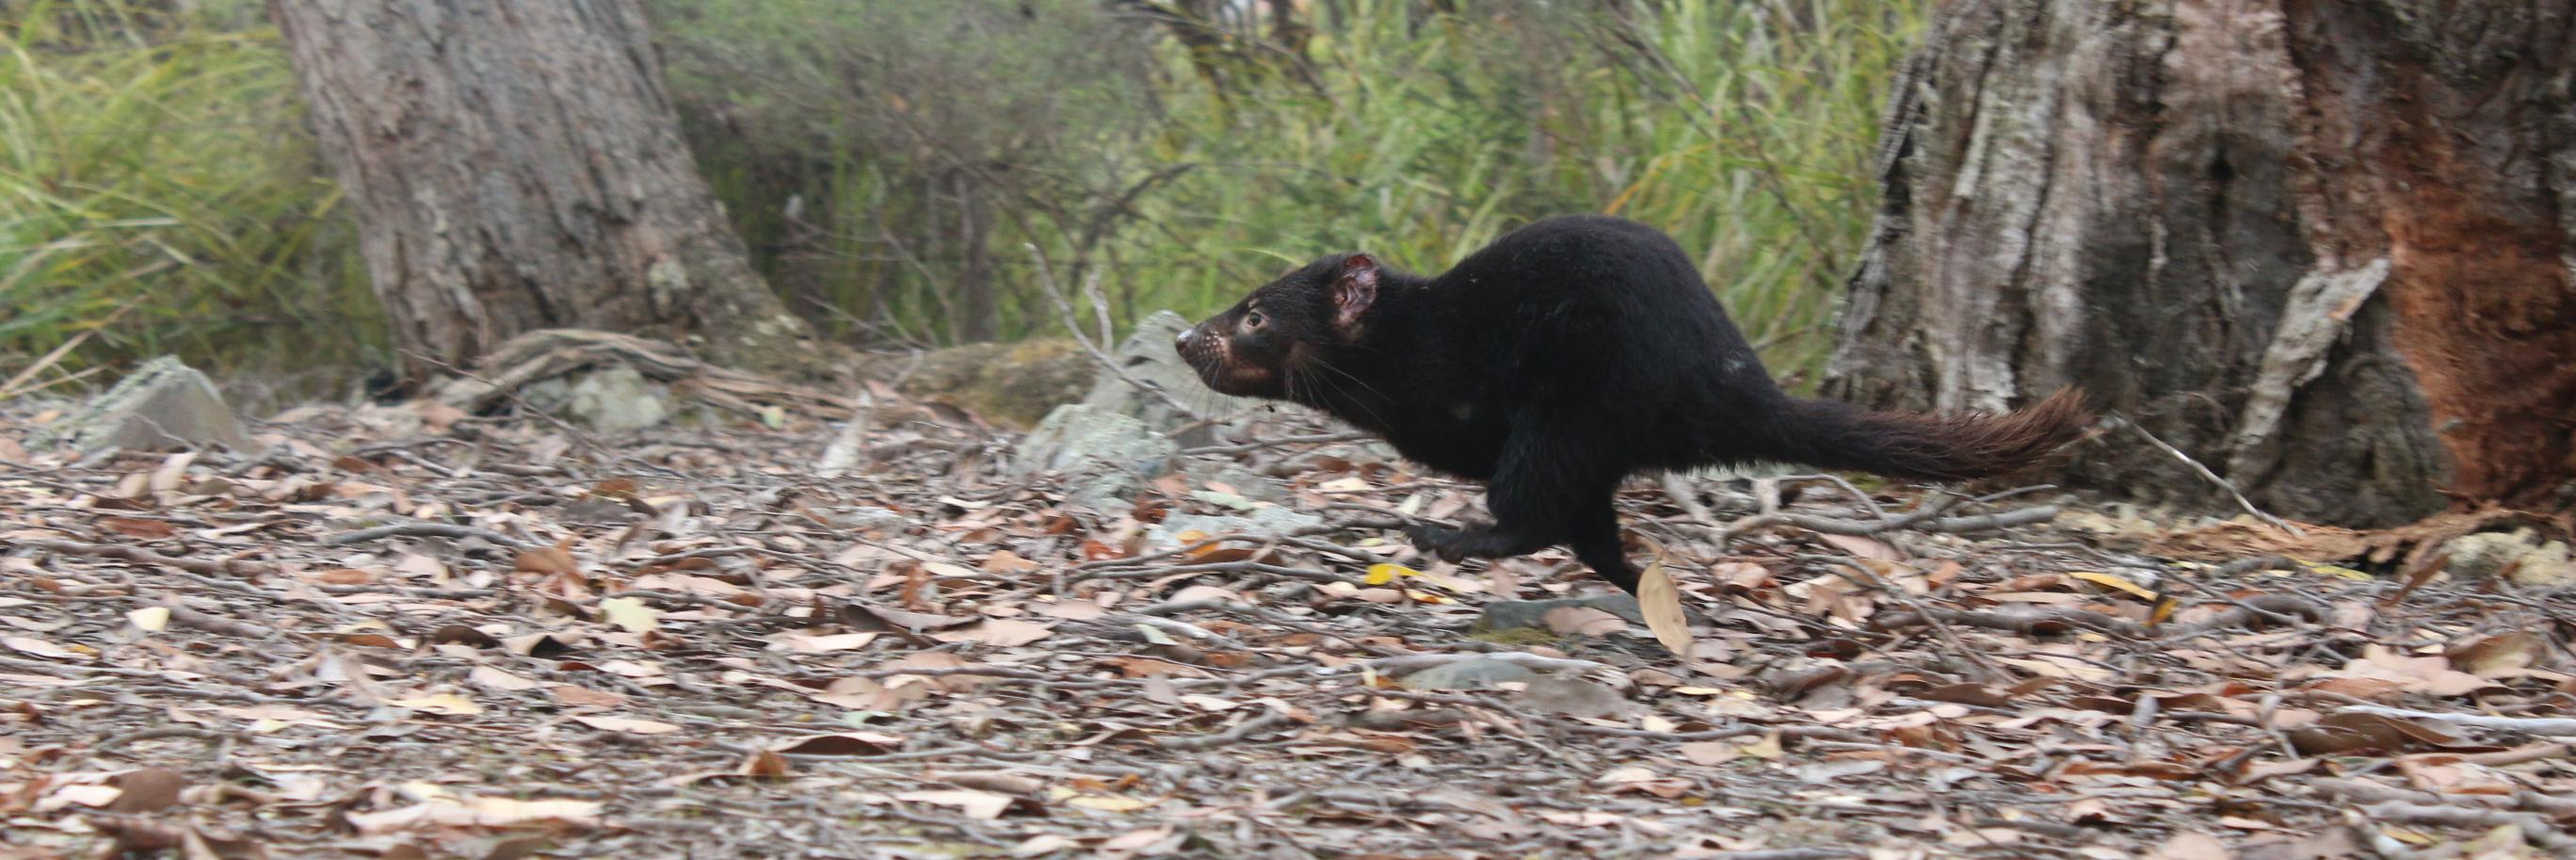 What's even better than a Tasmanian devil? A Tasmanian devil carrying pouch young! These joeys are ~ 4.5 mths ol… https://t.co/CRJqMTpzQH